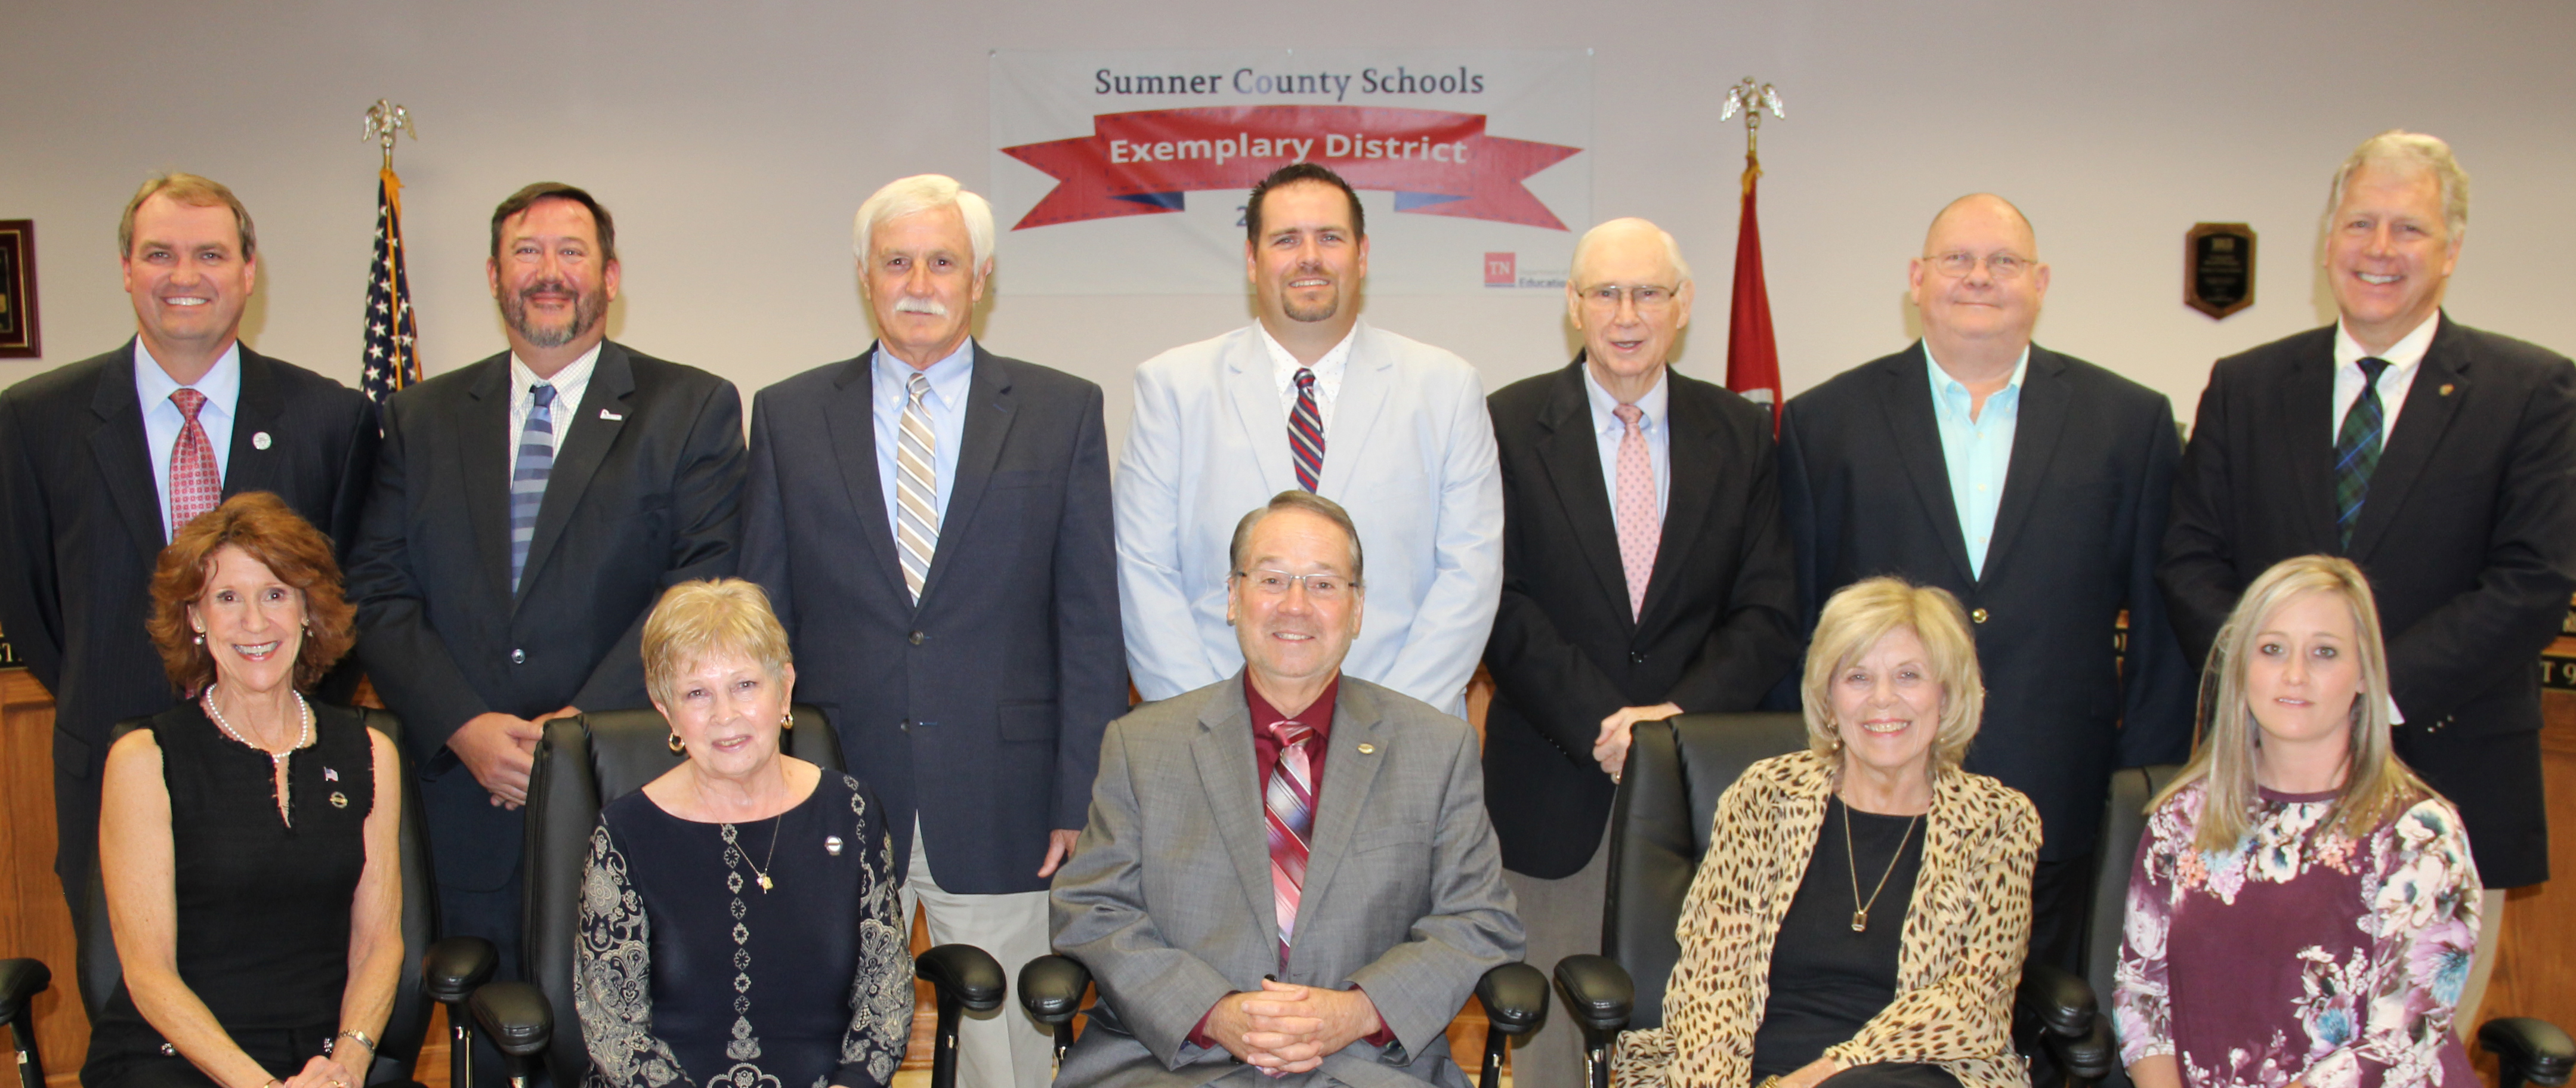 2018 Board Members with Dr. Phillips